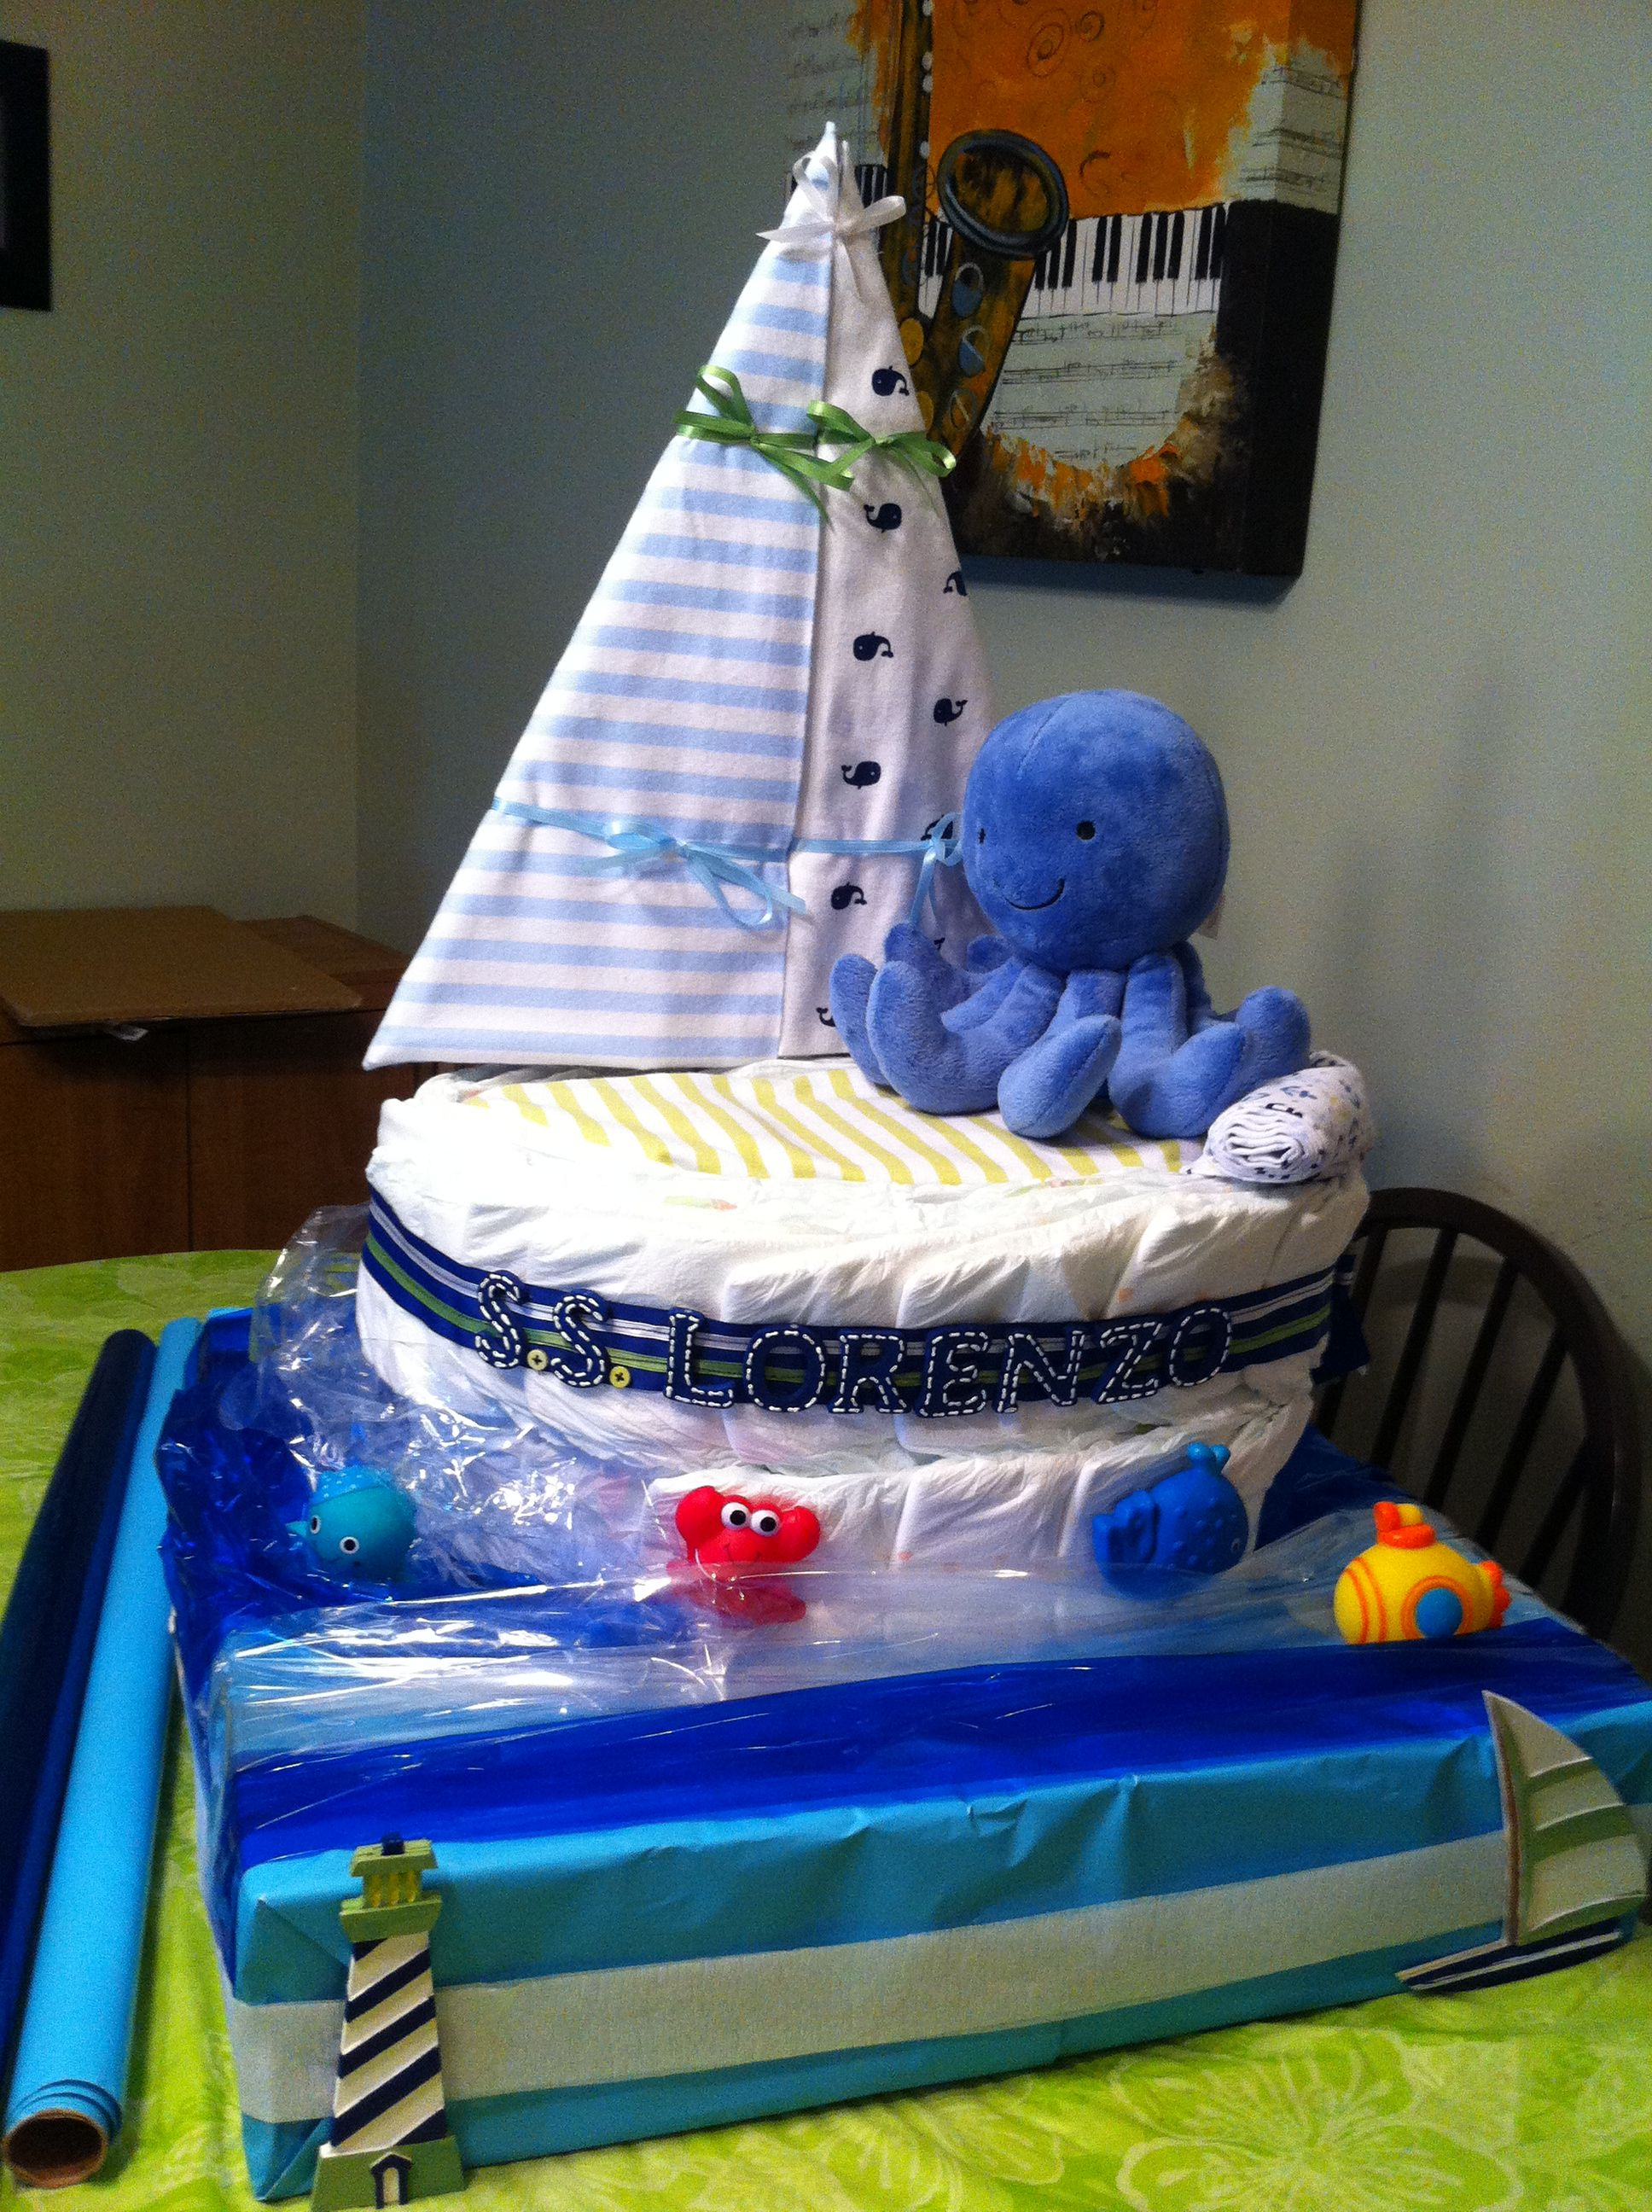 Sail Boat Diaper Cake See Craftyconjuring On Youtube For